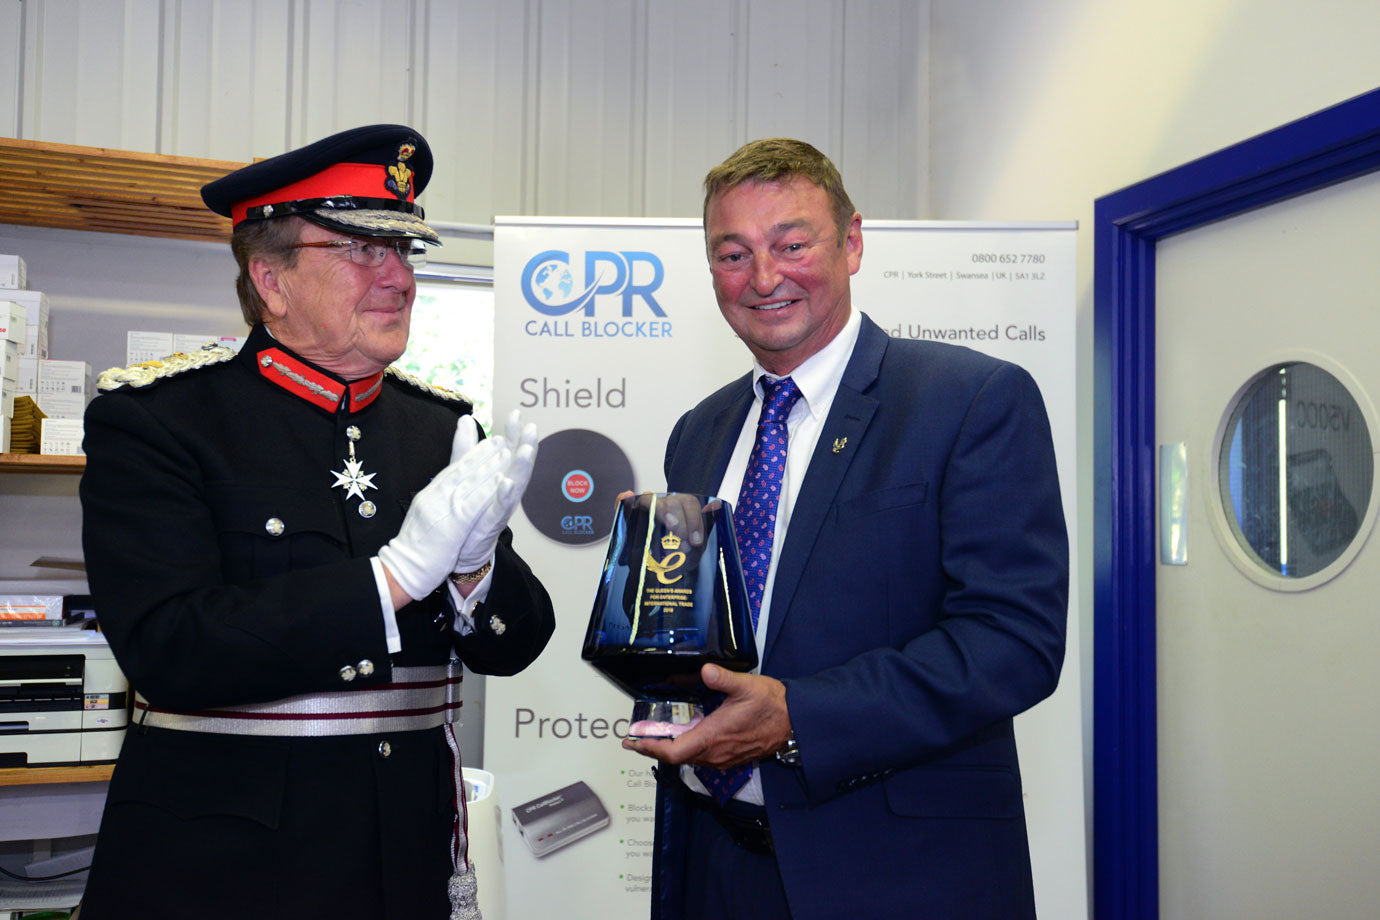 Queen's Award Presentation from HM Lord Lieutenant